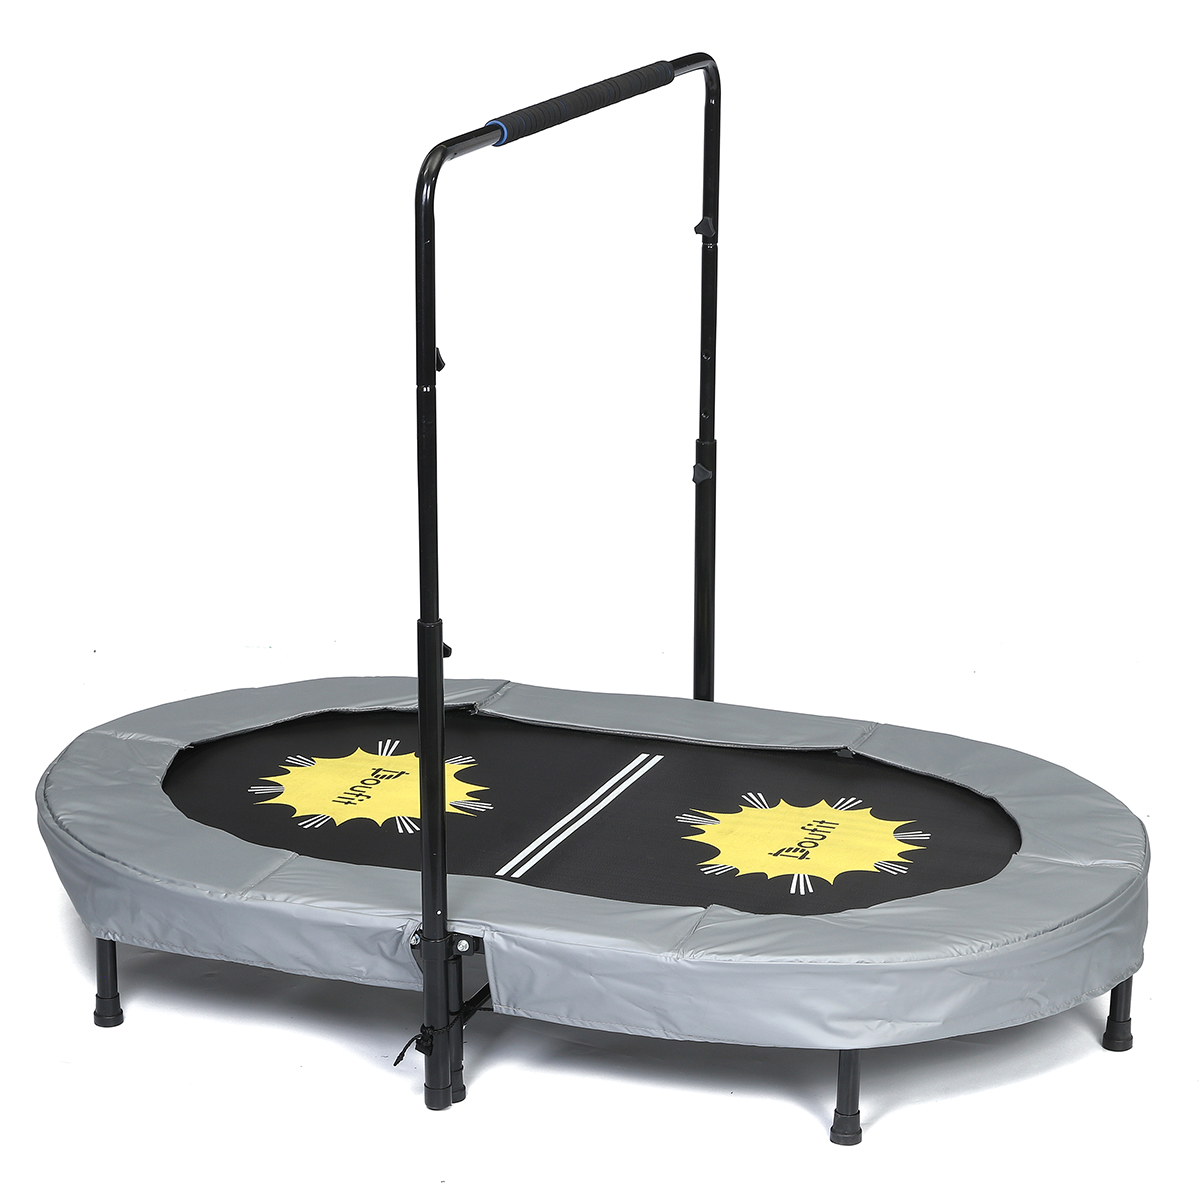 TR-01 Double Jumping Fitness Rebounder Foldable Trampoline for Indoor and Outdoor Exercise with Additional Spring Cover Doufit Trampoline for Kids with Adjustable Handle